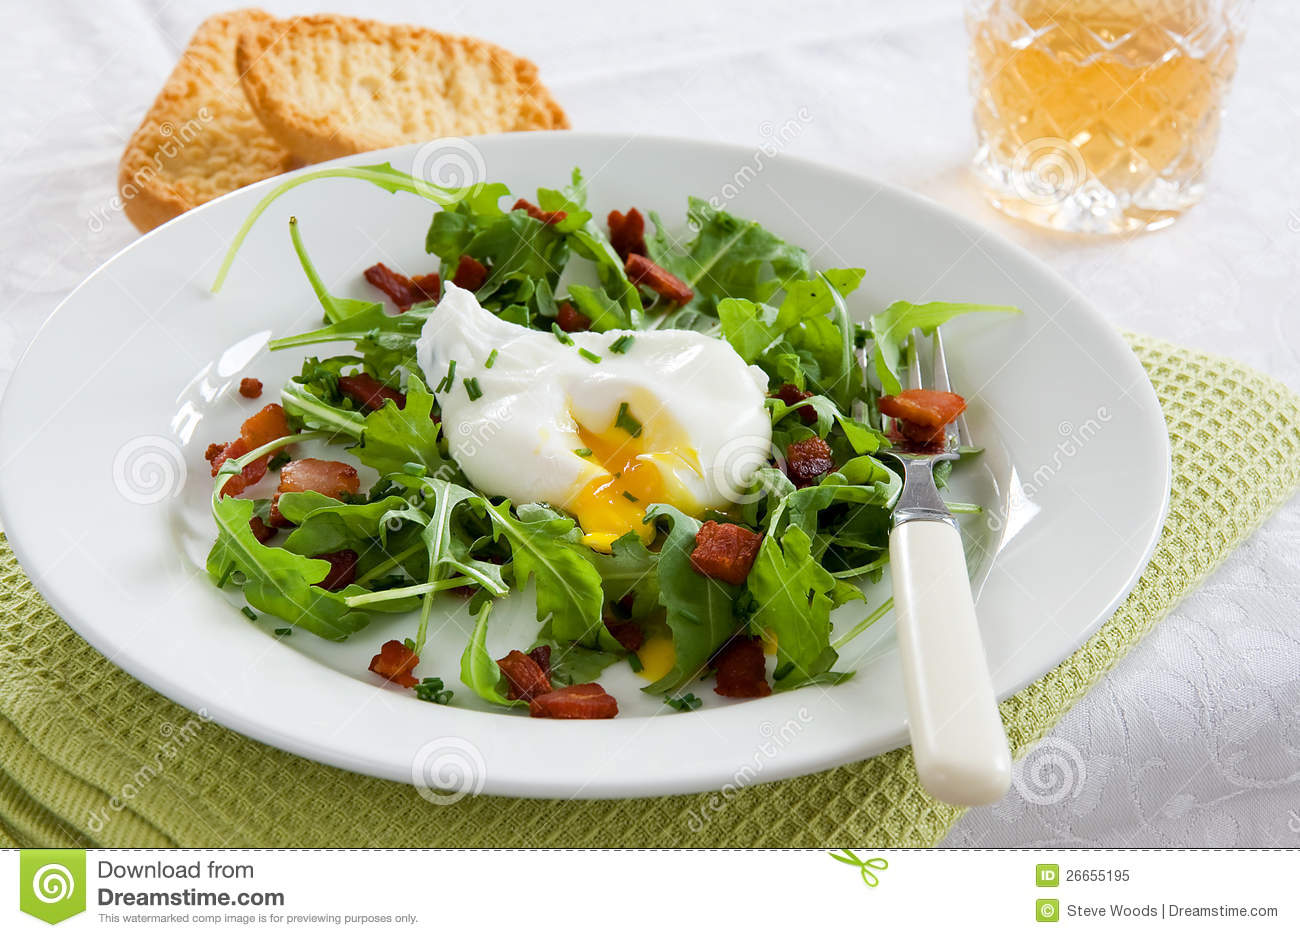 green French bistro style salad on a white plate and table setting.